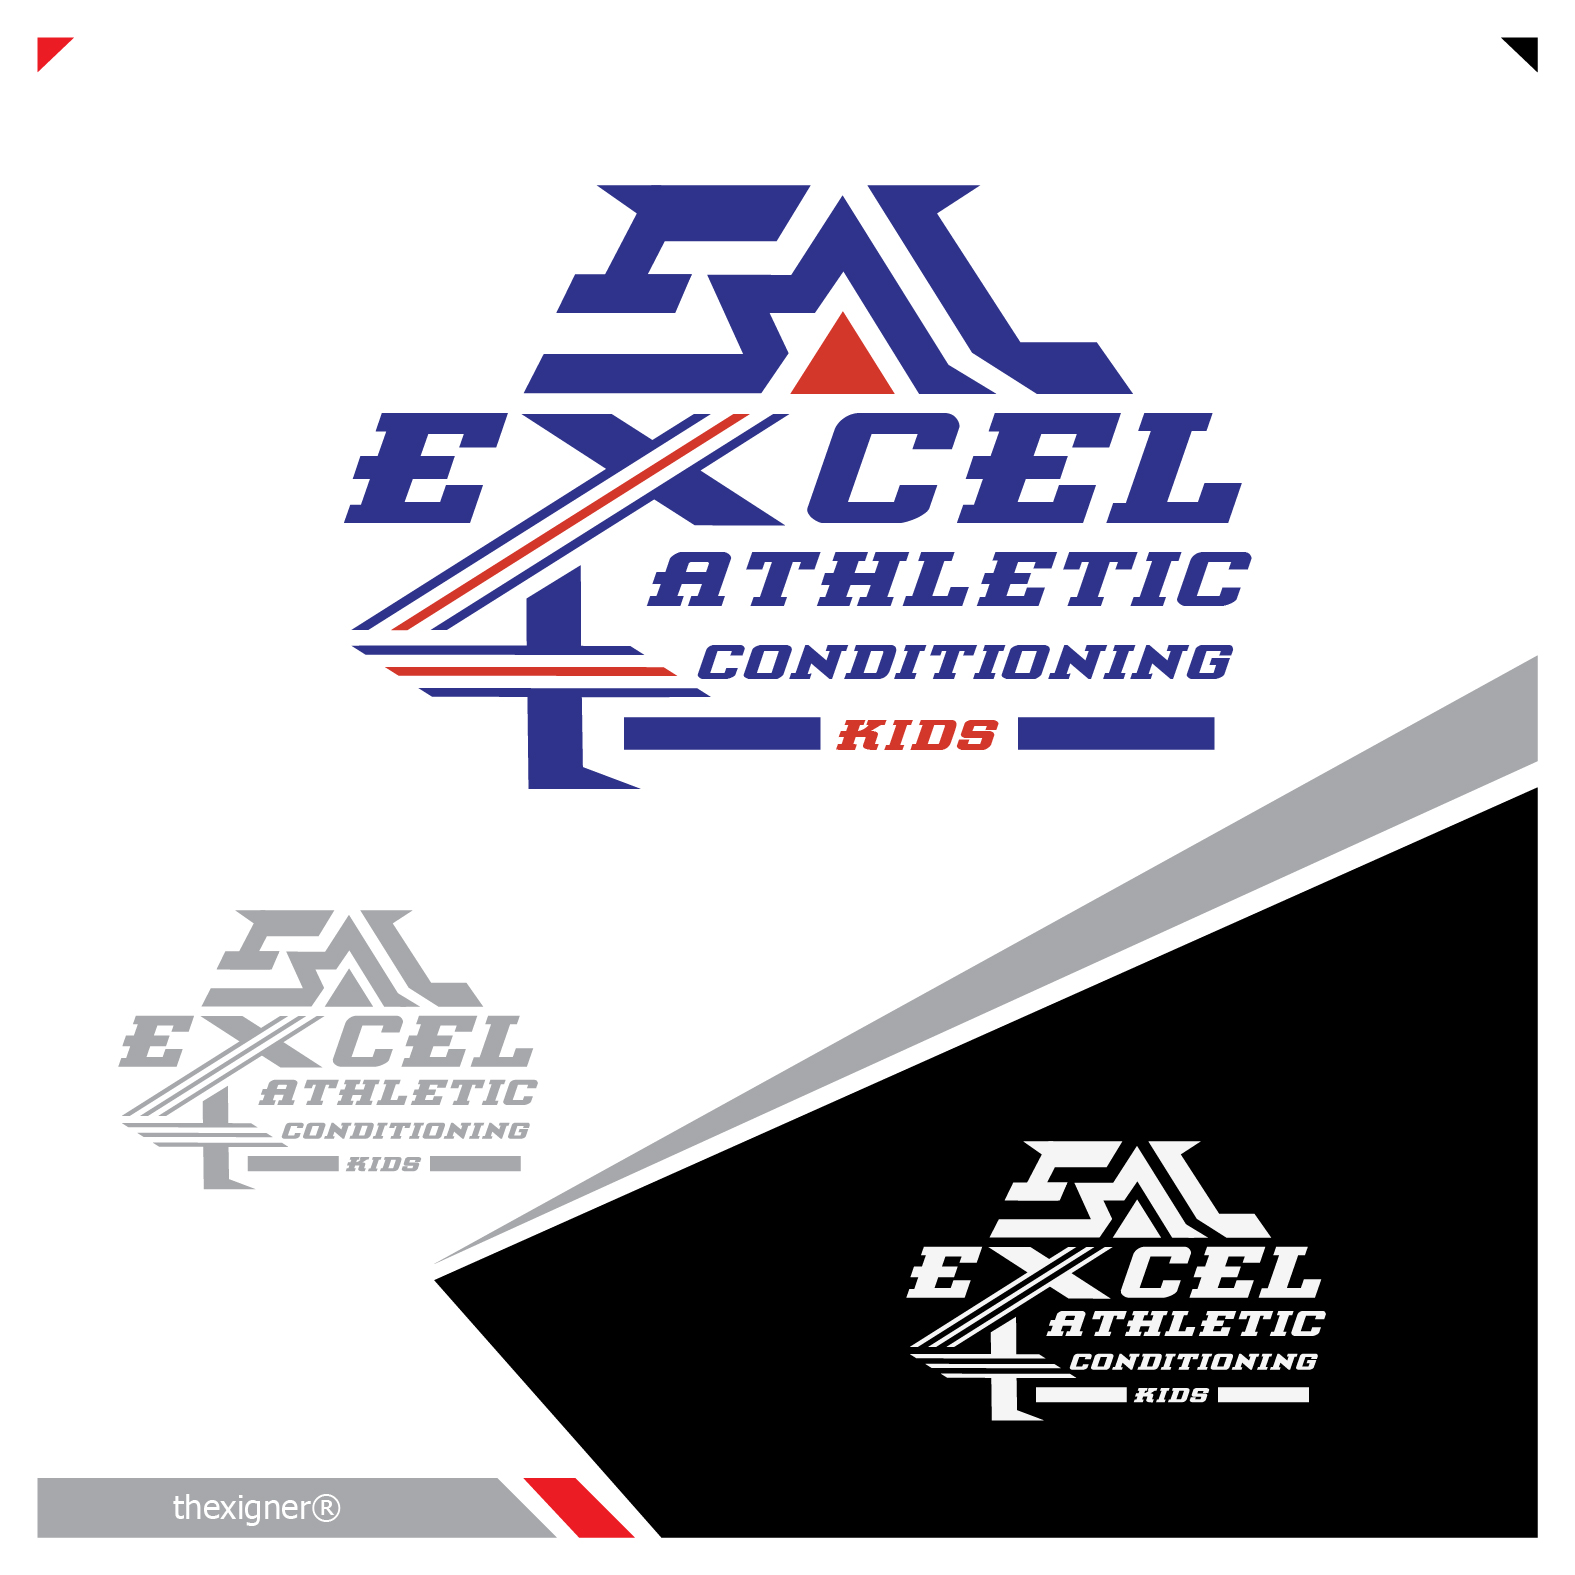 Logo Design by lagalag - Entry No. 50 in the Logo Design Contest Artistic Logo Design for Excel Athletic Conditioning 4 kids.